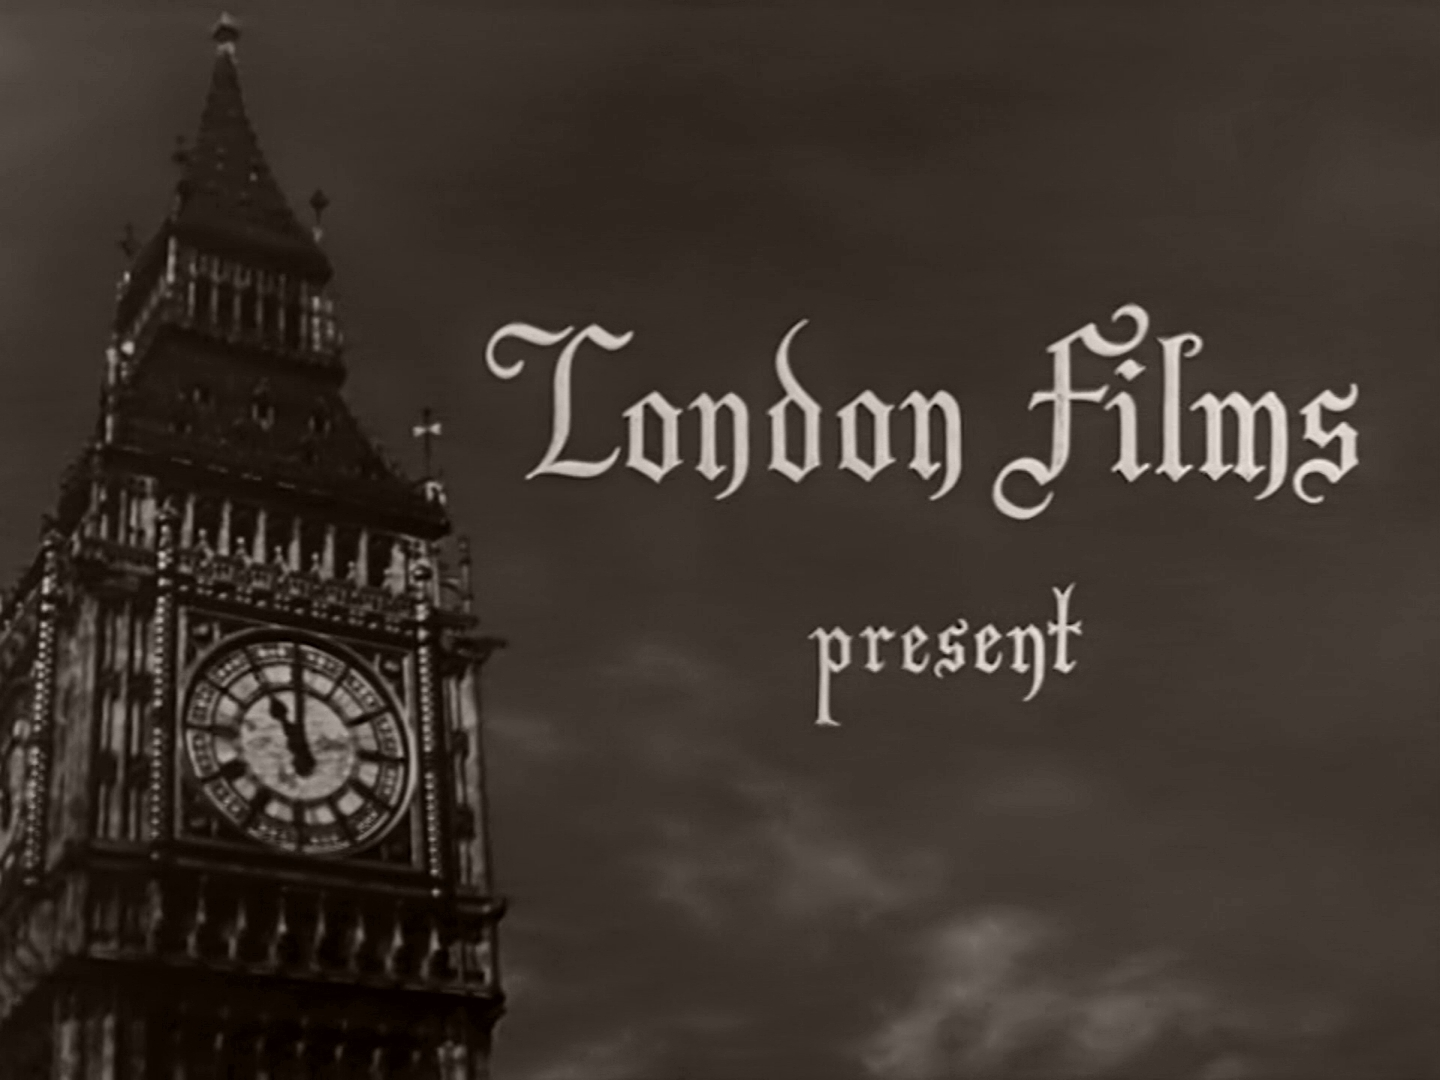 Main title from Home at Seven (1952) (1). London Films present